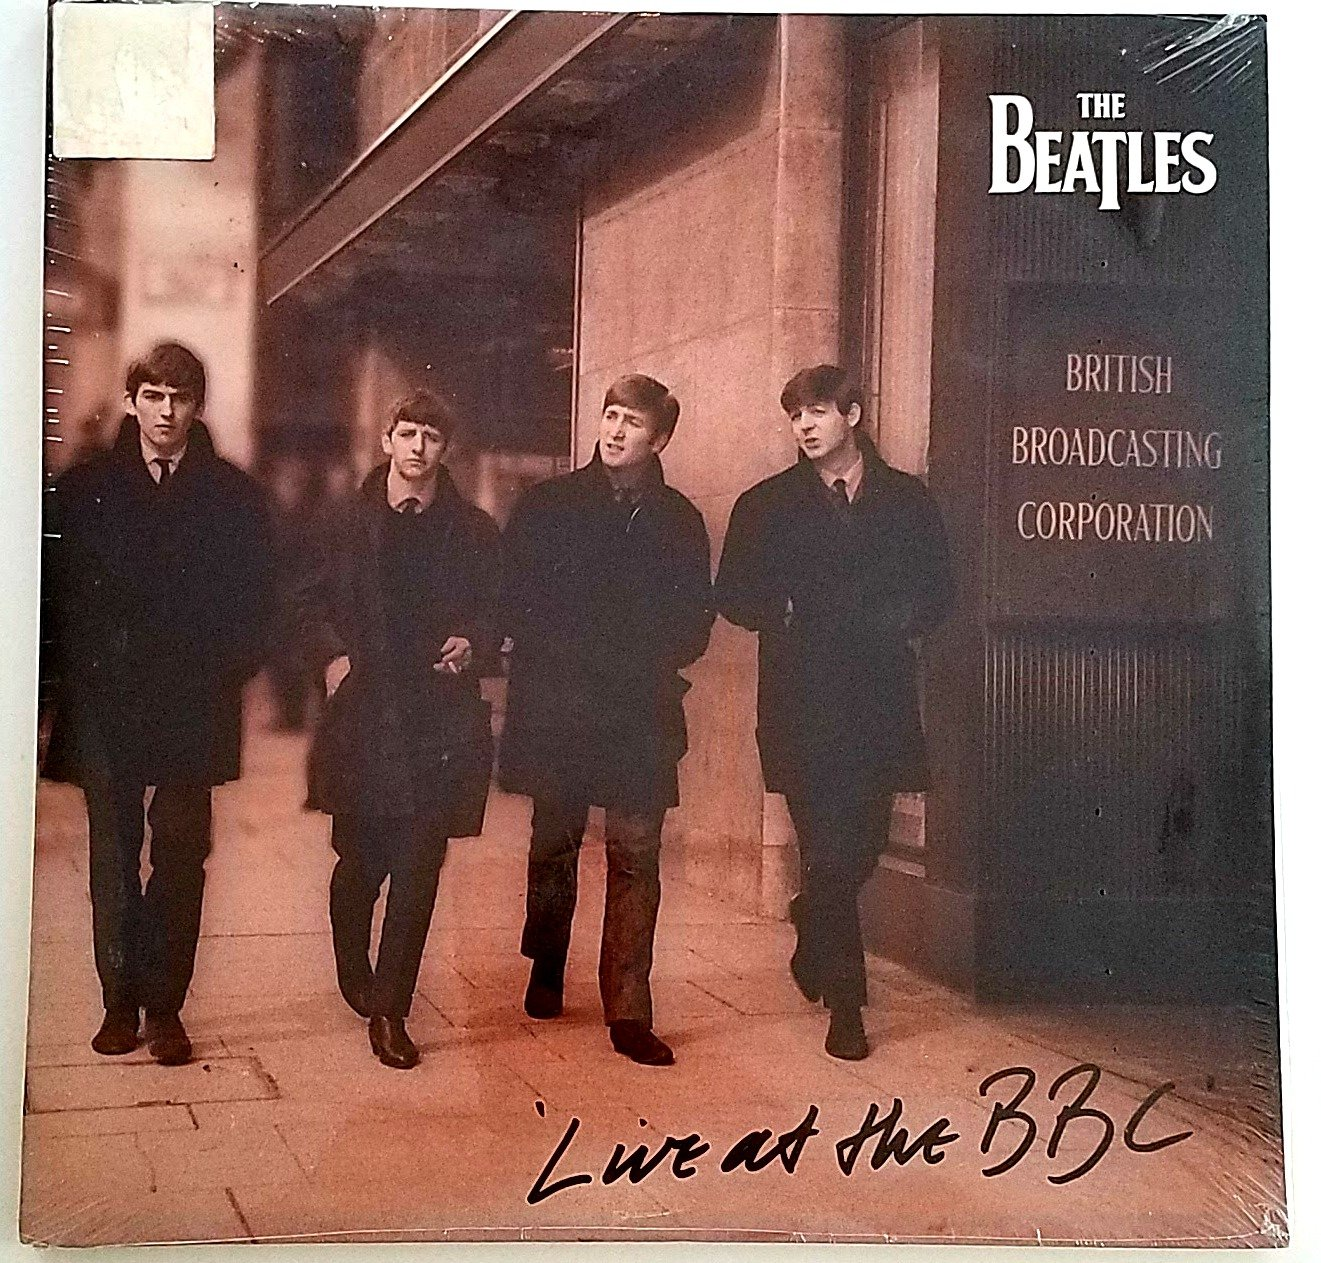 Live at the BBC [Vinyl] by Emd Int'l